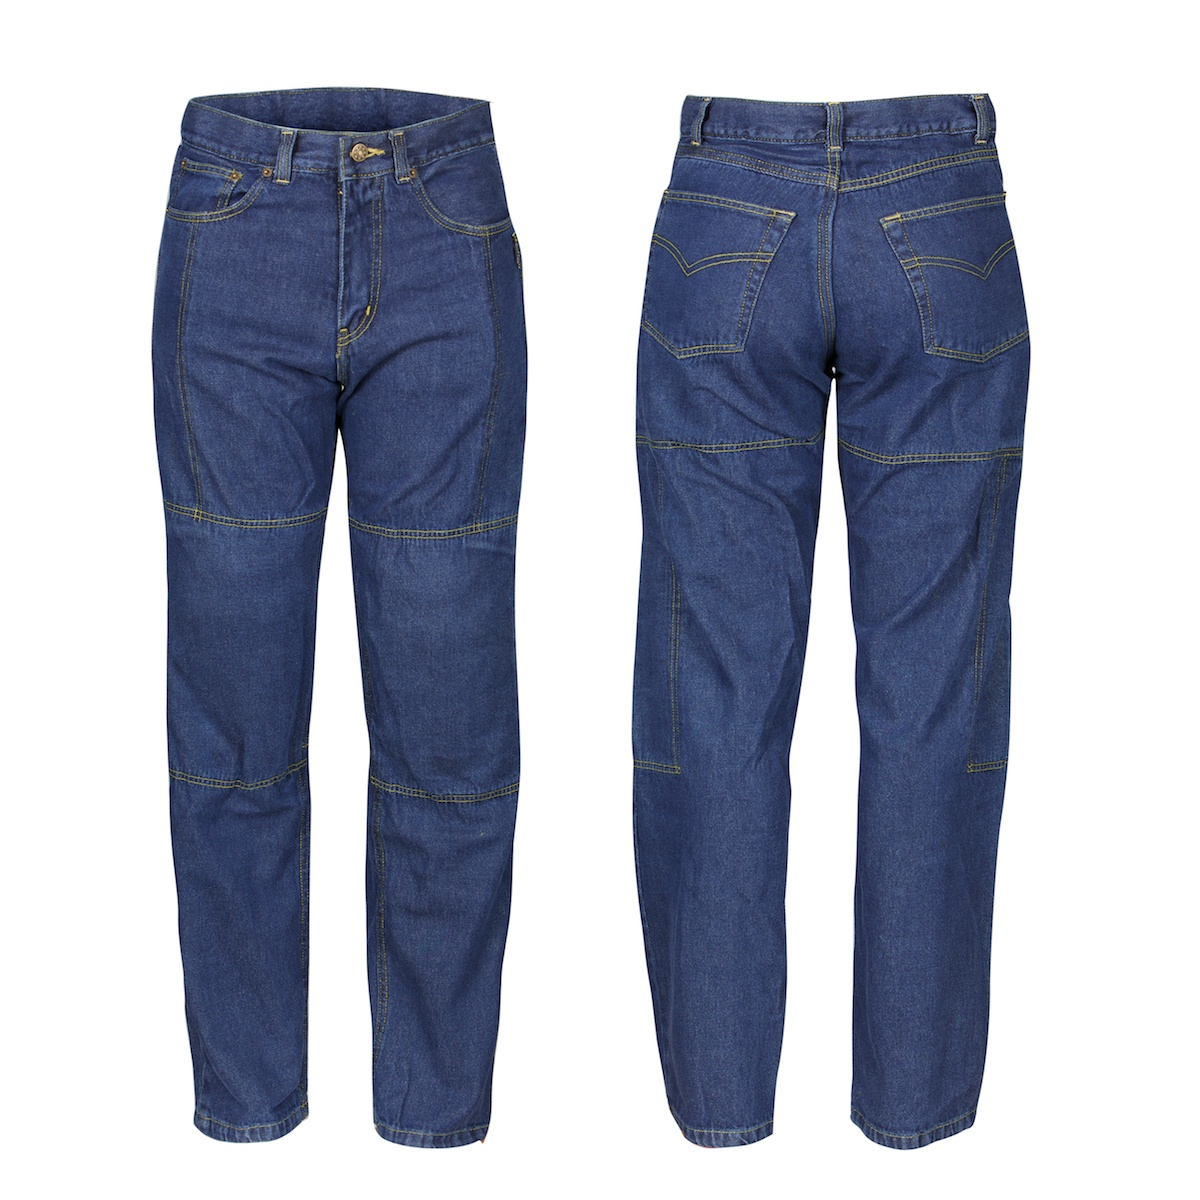 WORKER City 139B motojeans nohavice na motorku 4XL